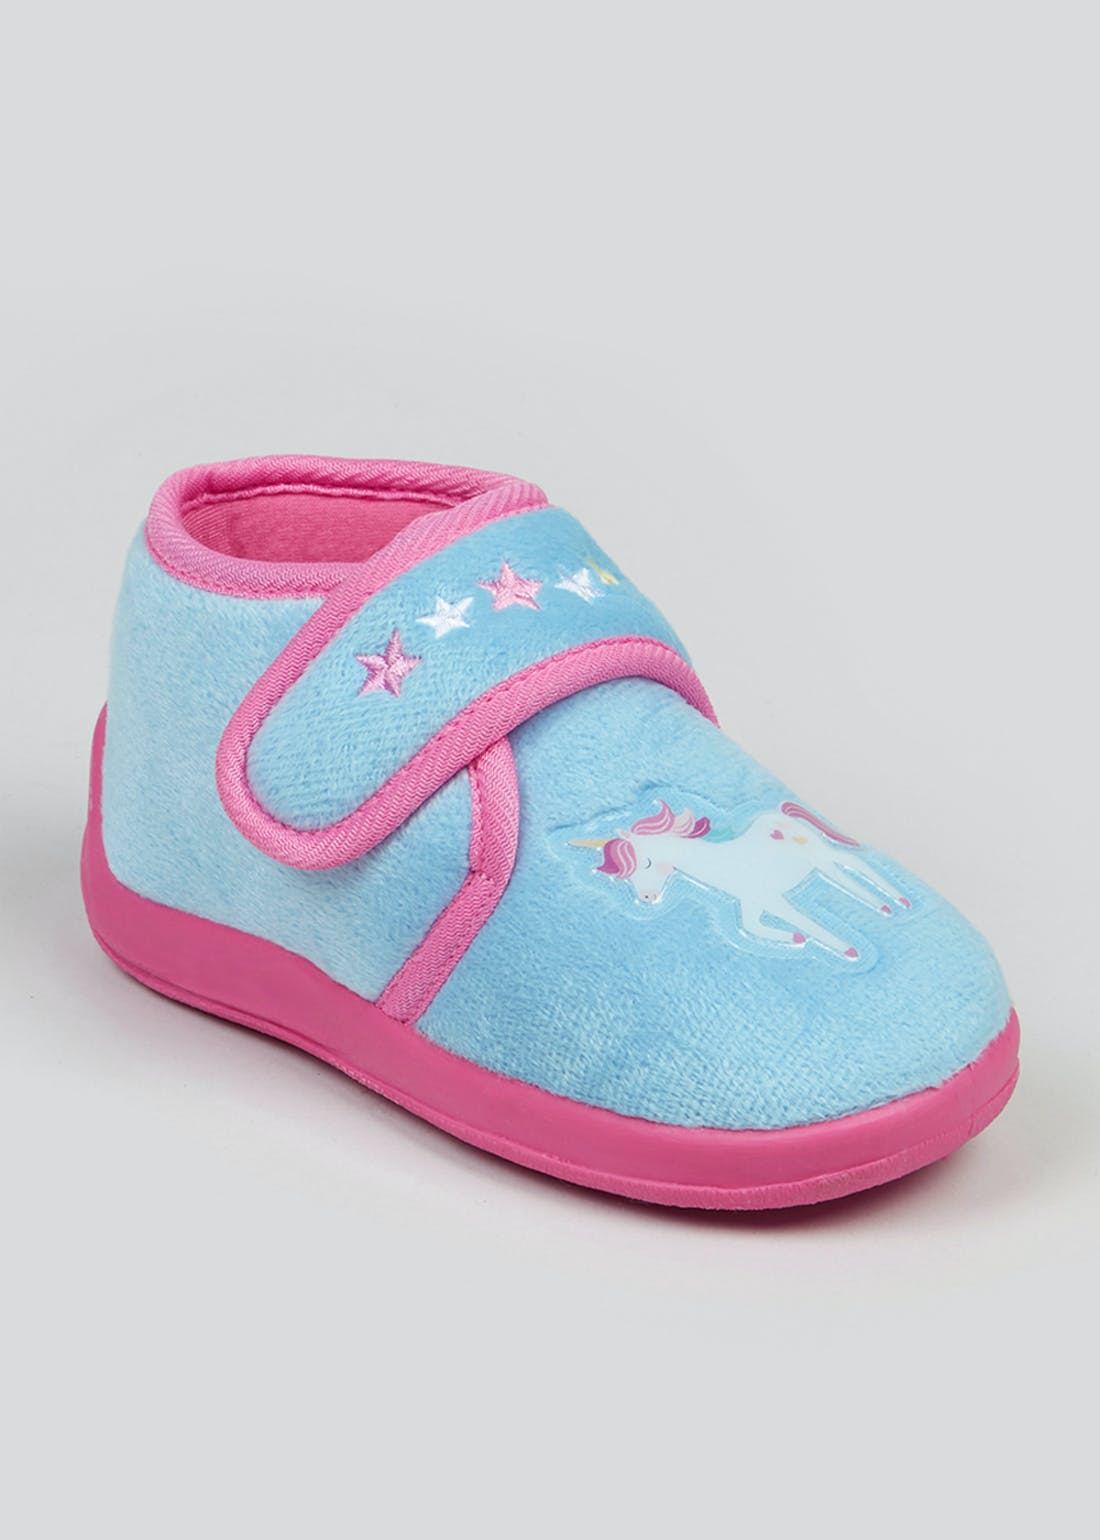 Kids Unicorn Slippers (Younger 4-12)